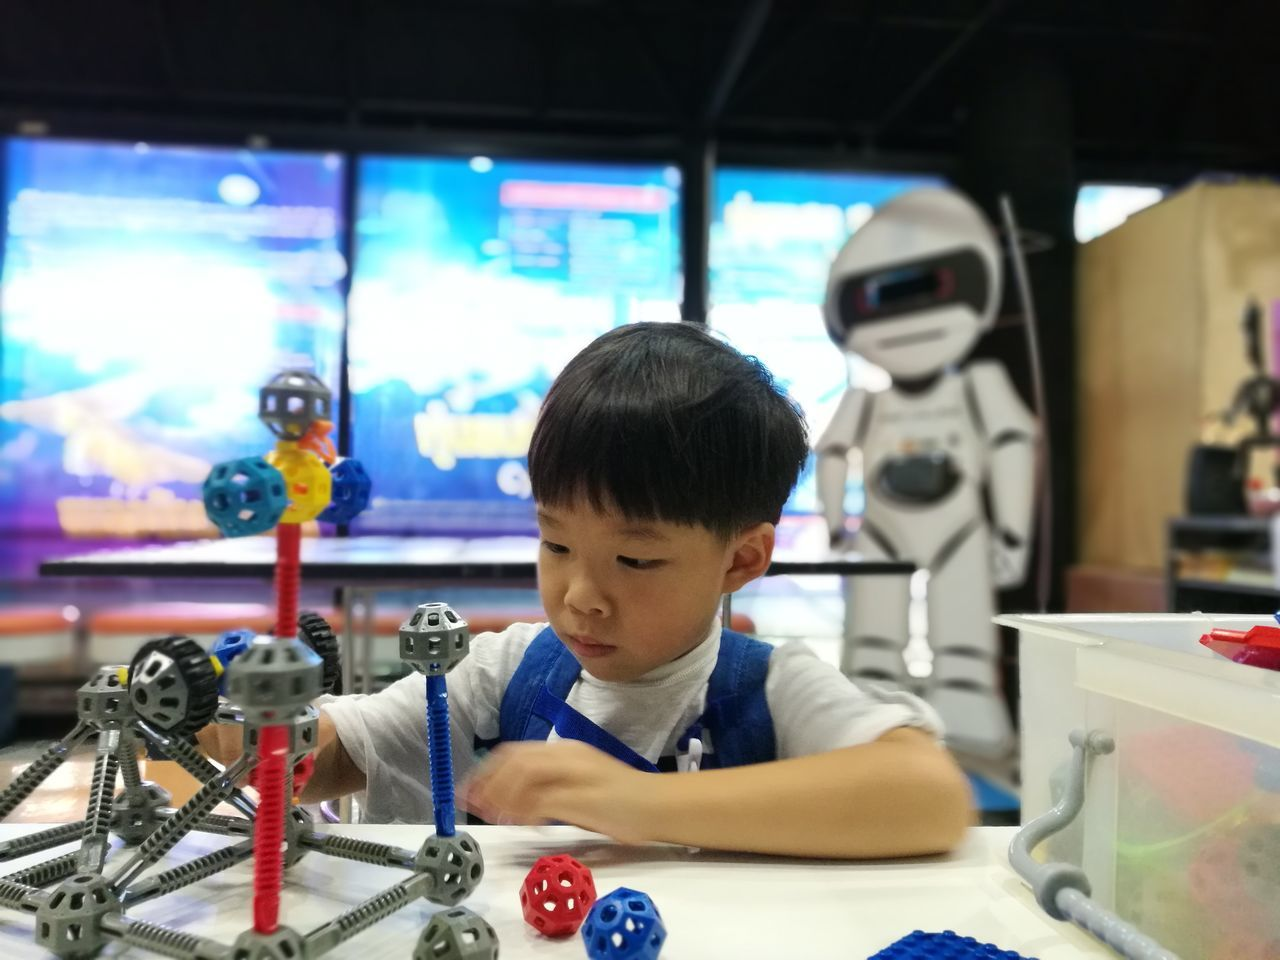 Science Learning Business Finance And Industry Headshot Front View Education Indoors  Scientific Experiment Boys Concentration Work Tool Laboratory Discovery Working People Childhood One Person Student Industry Children Only Maker Startup Kid Clever Learn